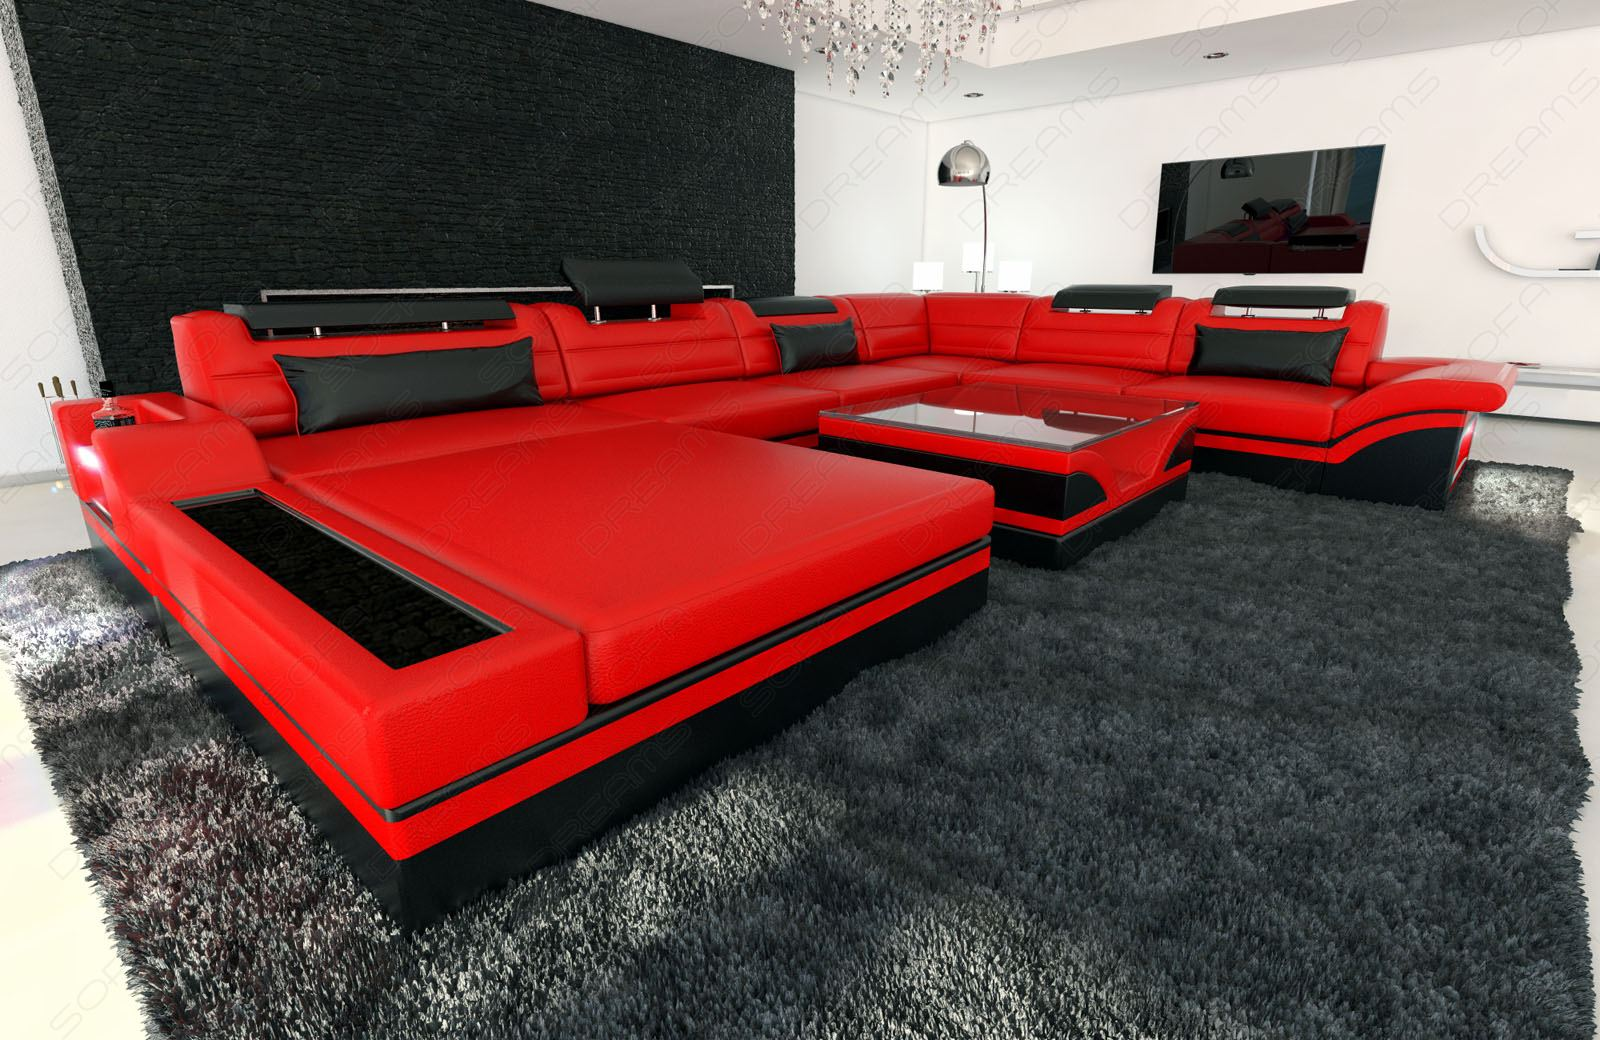 red black sectional sofa design sectional sofa mezzo l with led lights red black ebay thesofa. Black Bedroom Furniture Sets. Home Design Ideas